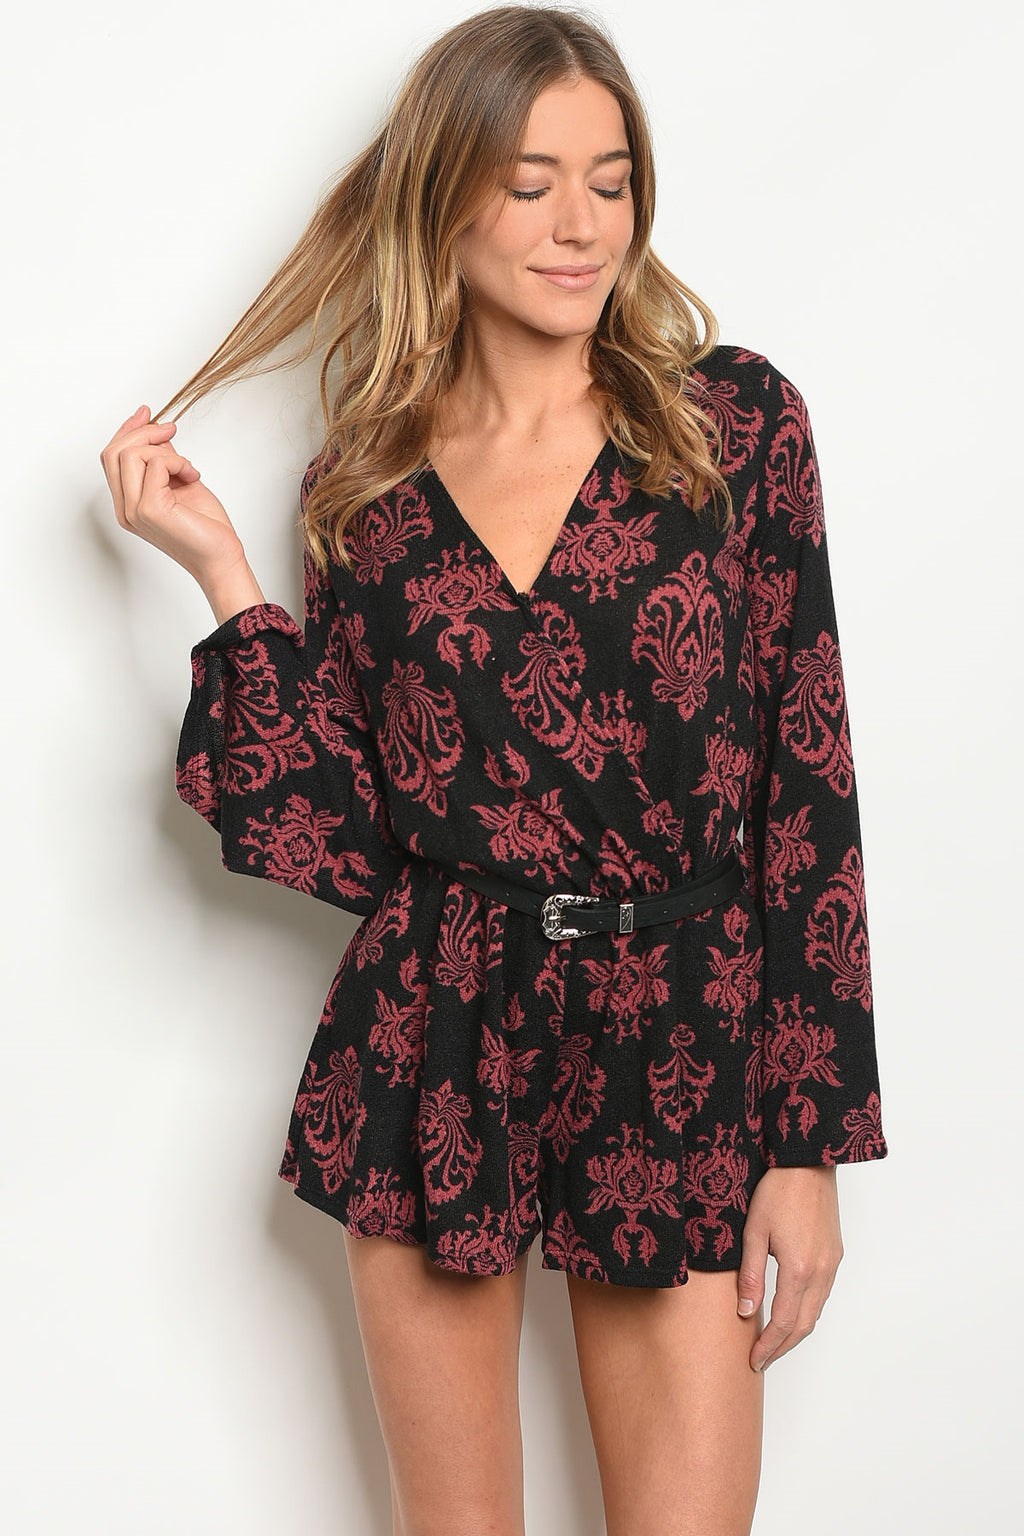 Let's Romp And Roll Romper